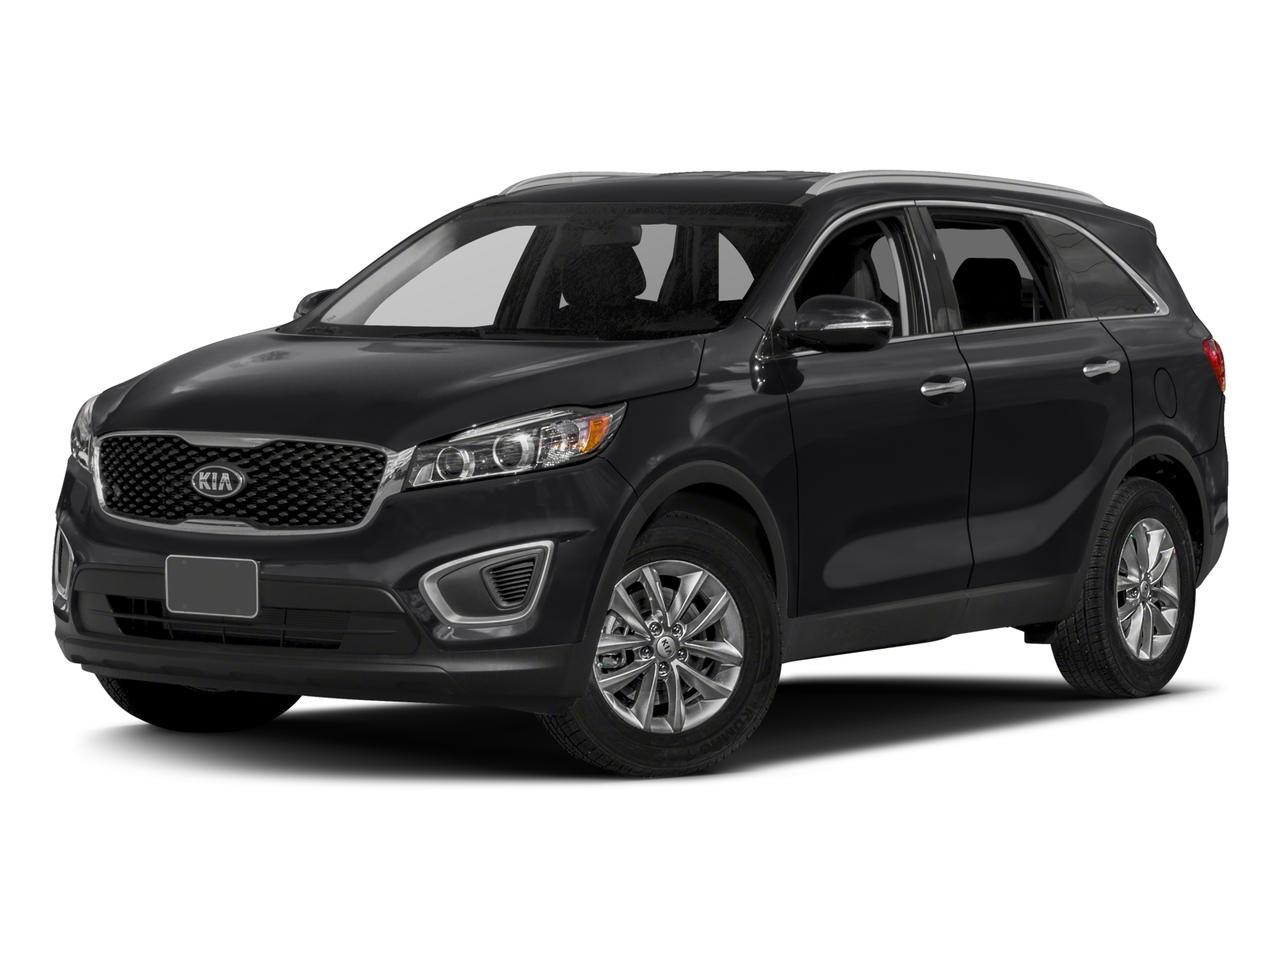 2018 Kia Sorento Vehicle Photo in Odessa, TX 79762